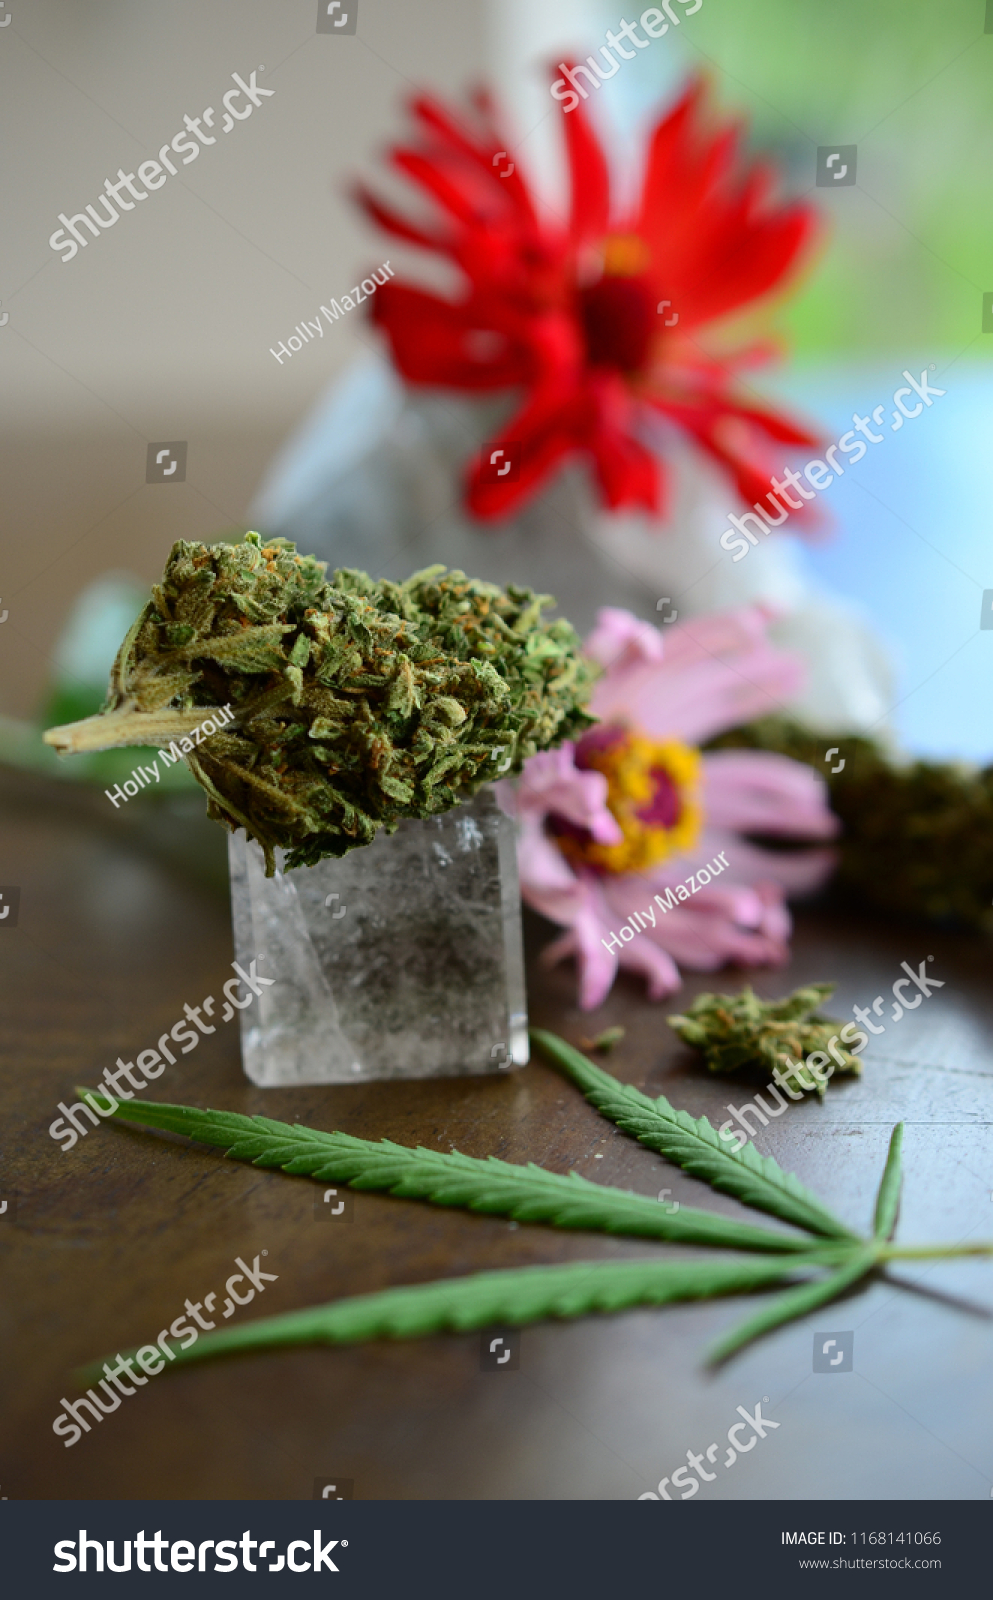 Lovely Cannabis Crystals Flowers Aesthetic Wood Stock Photo Edit Now 1168141066